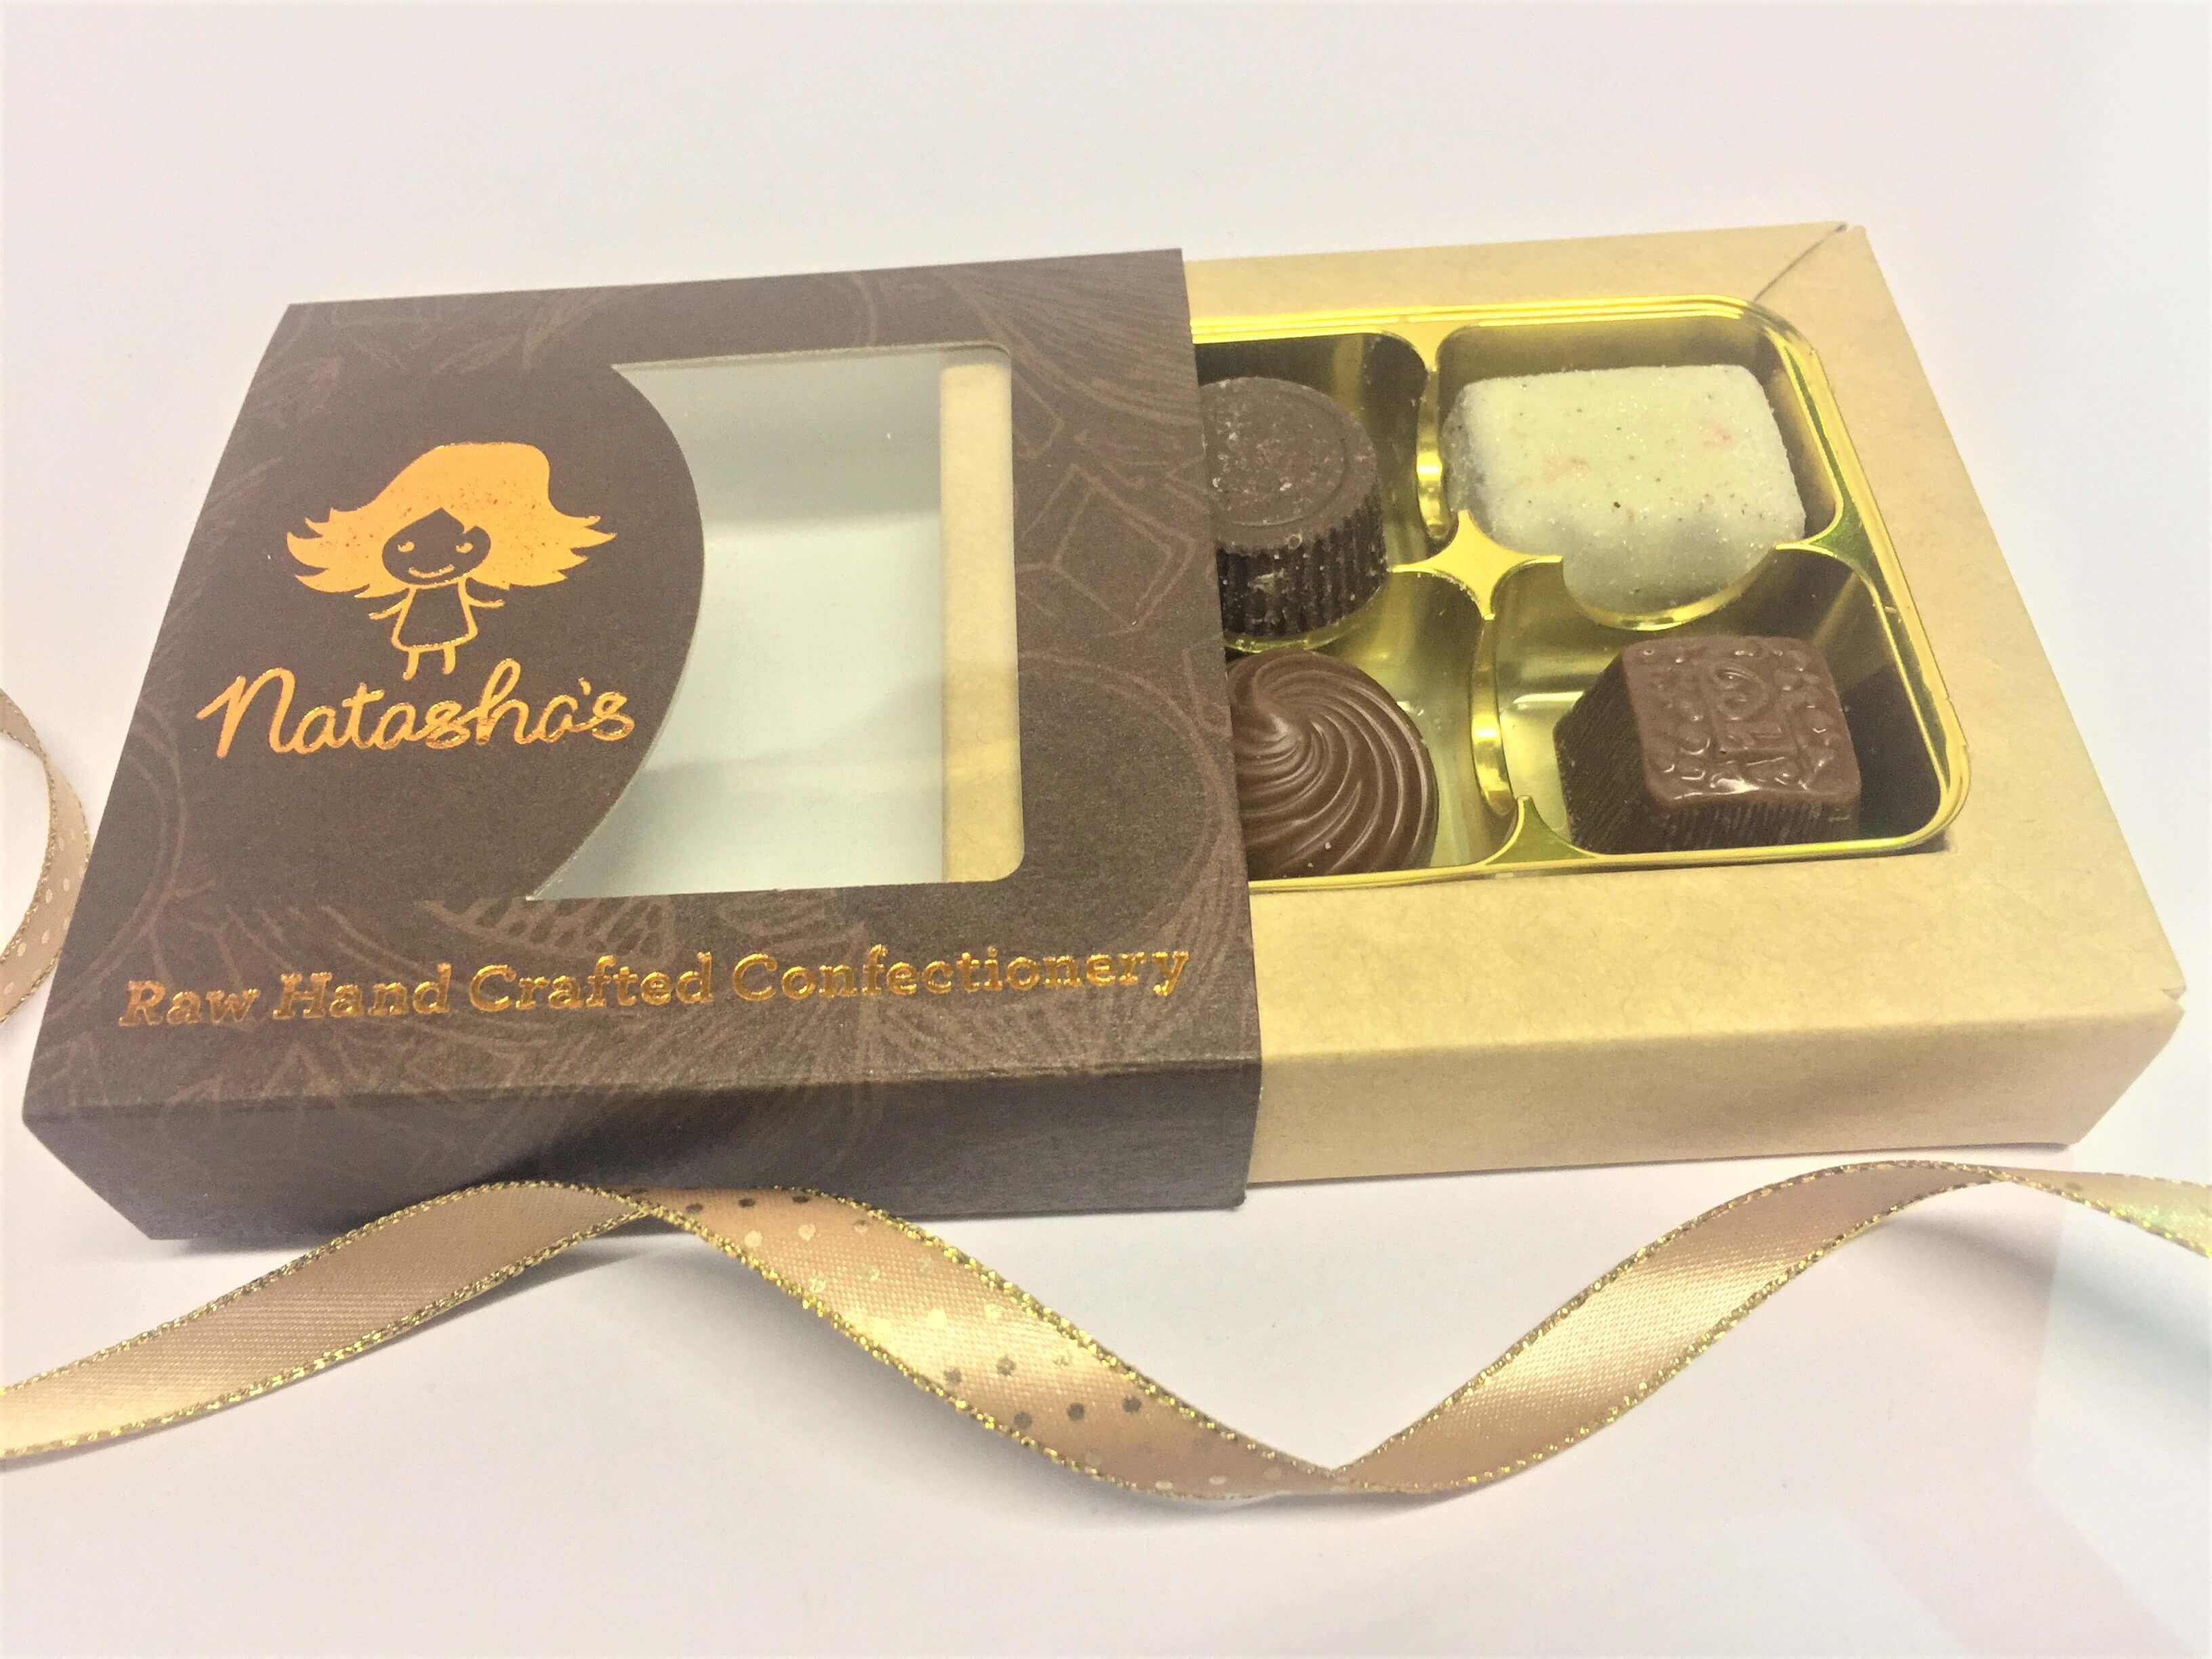 Bespoke Printed Chocolate Truffle Slider Boxes 4 Packs